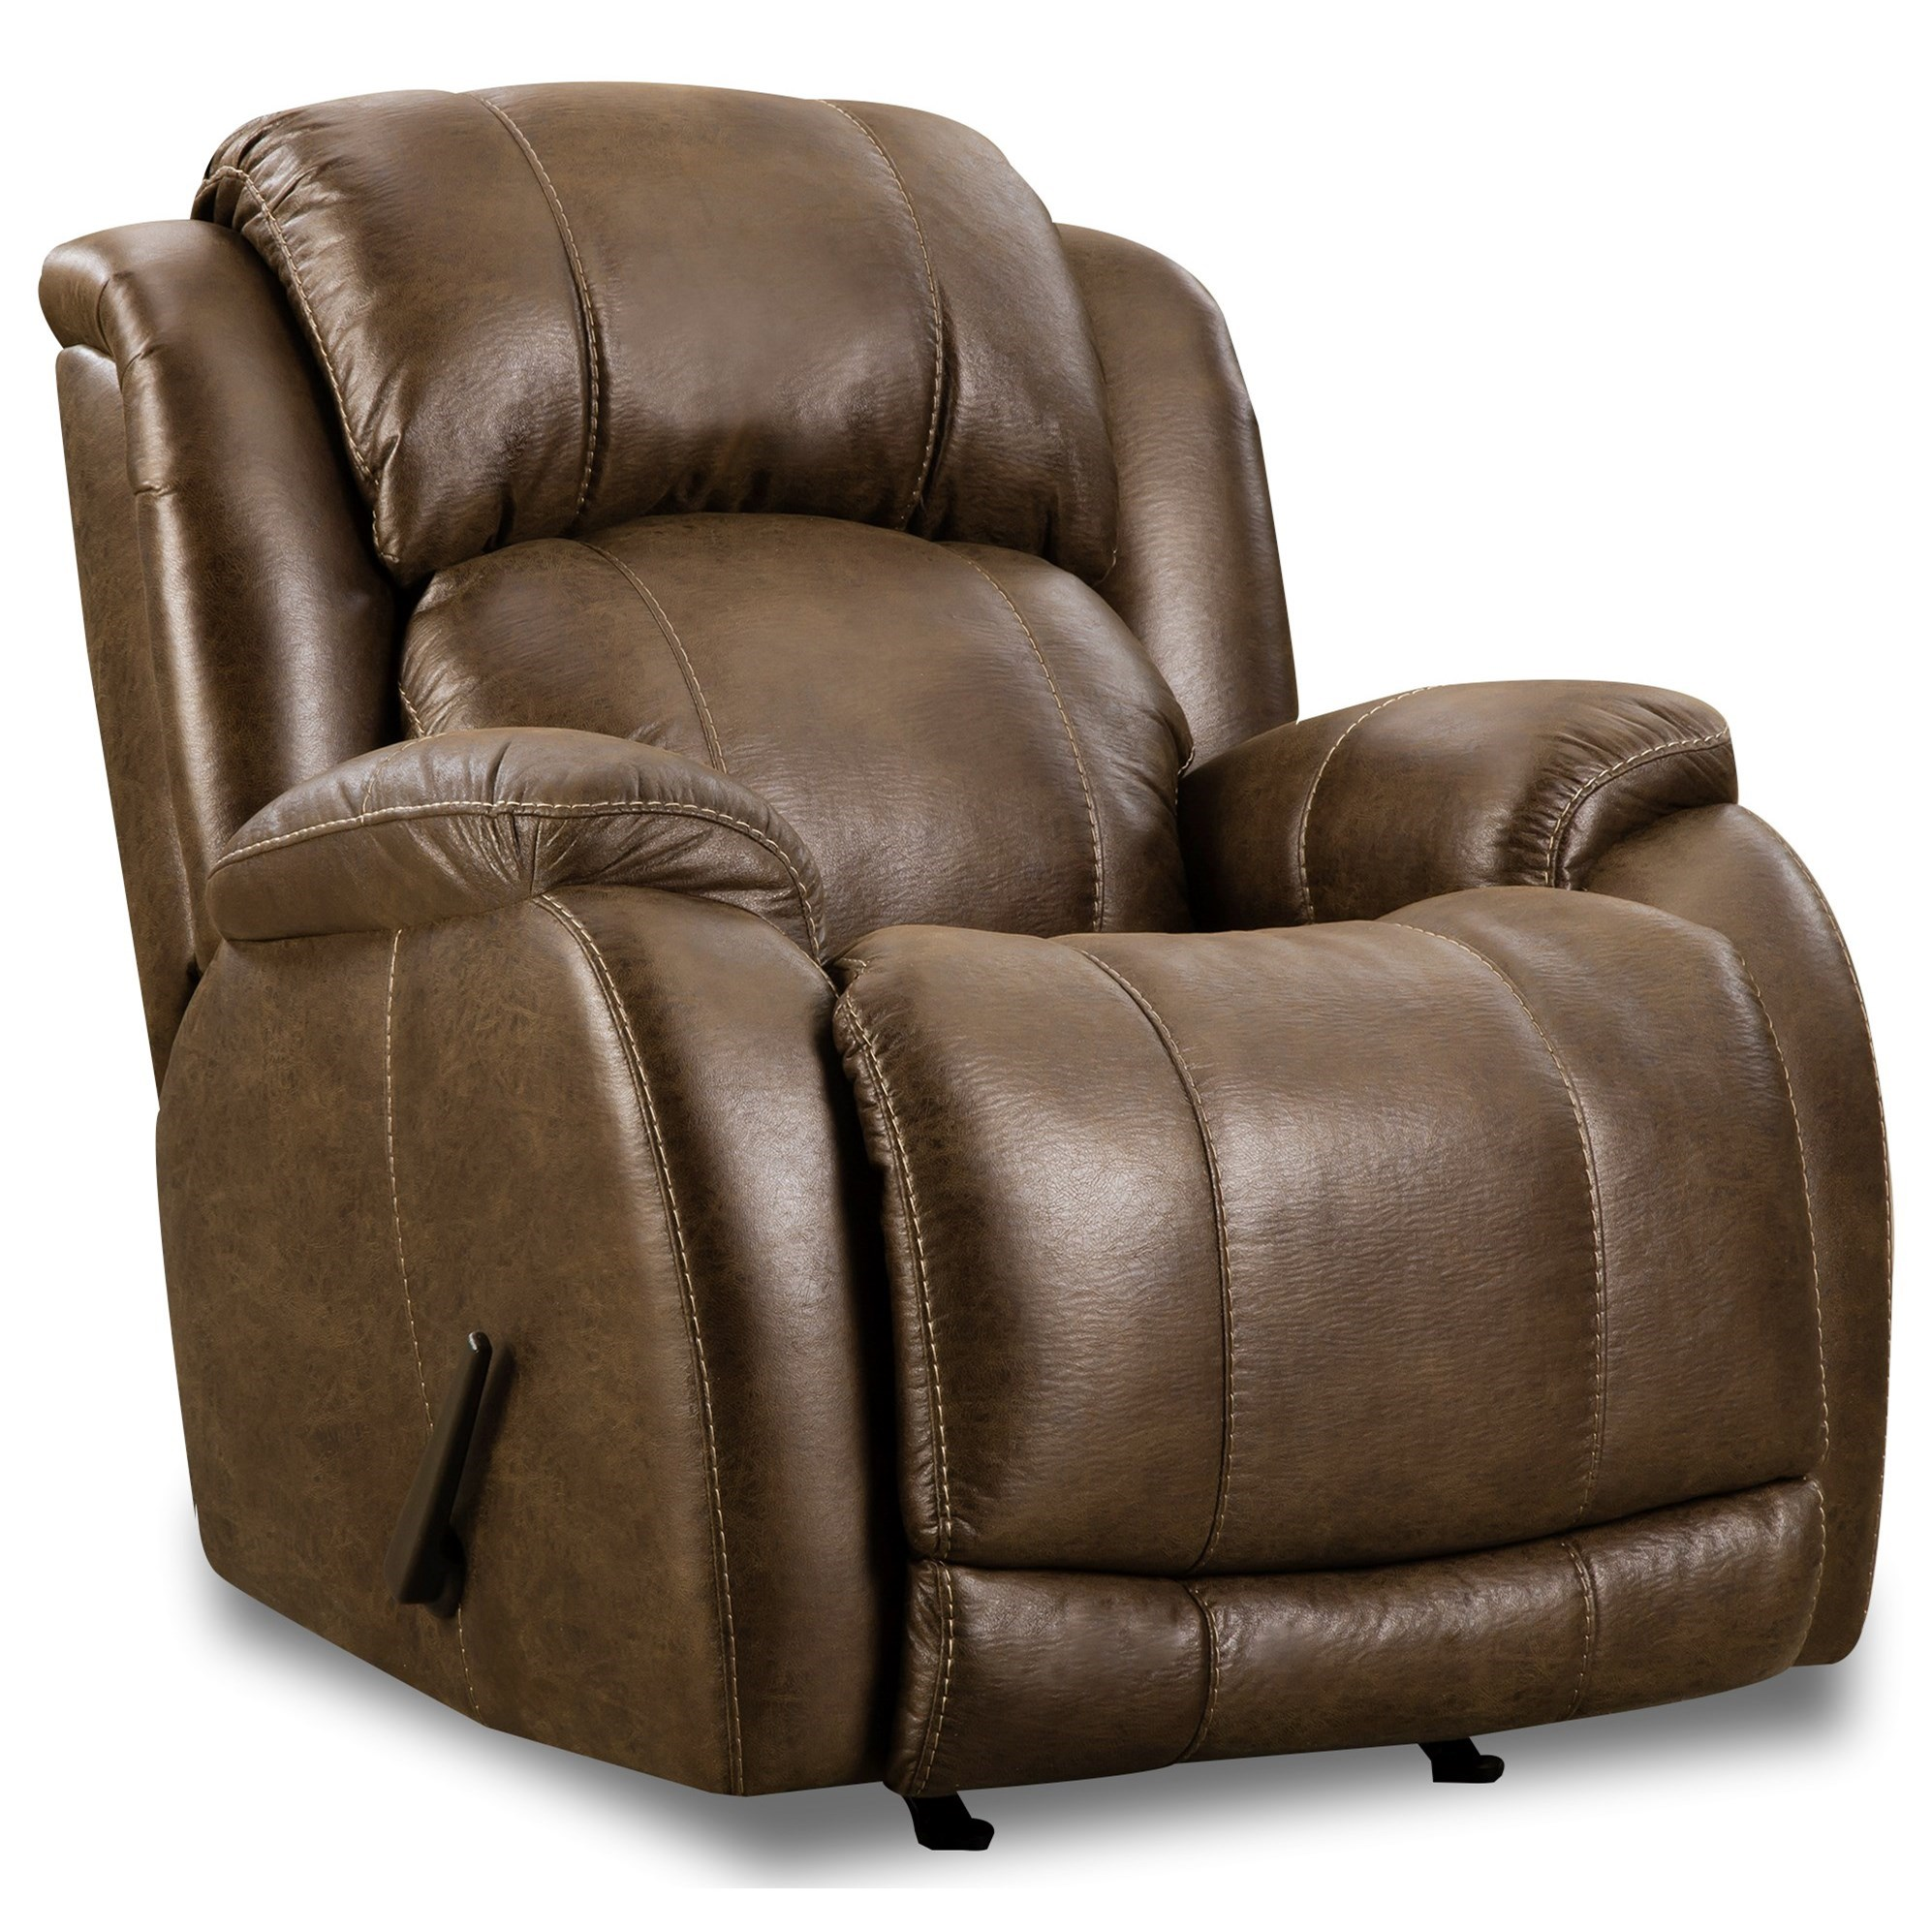 Denali Rocker Recliner by HomeStretch at Bullard Furniture